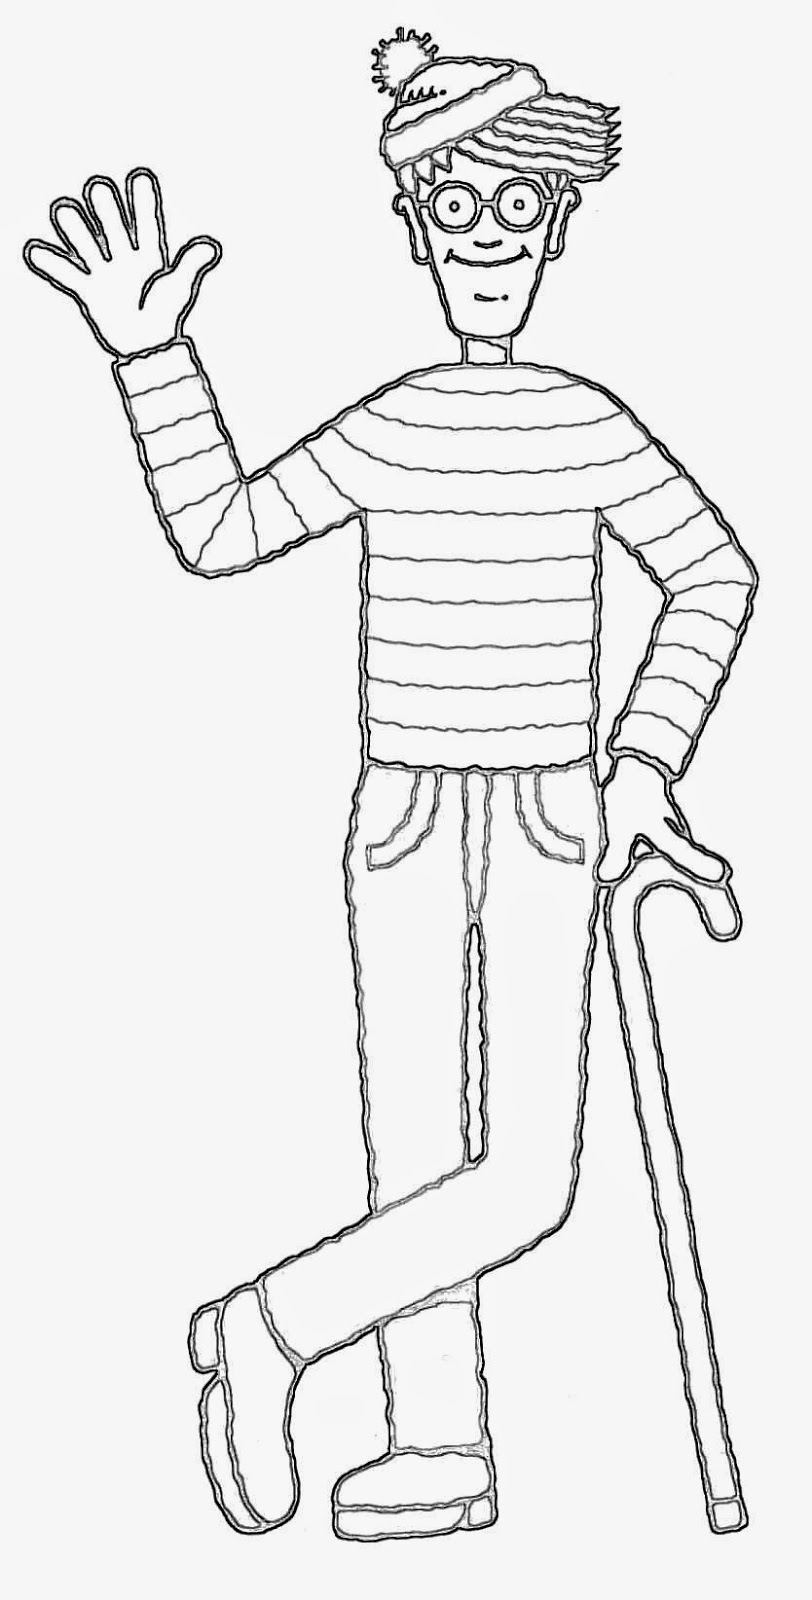 waldo coloring pages - photo#5